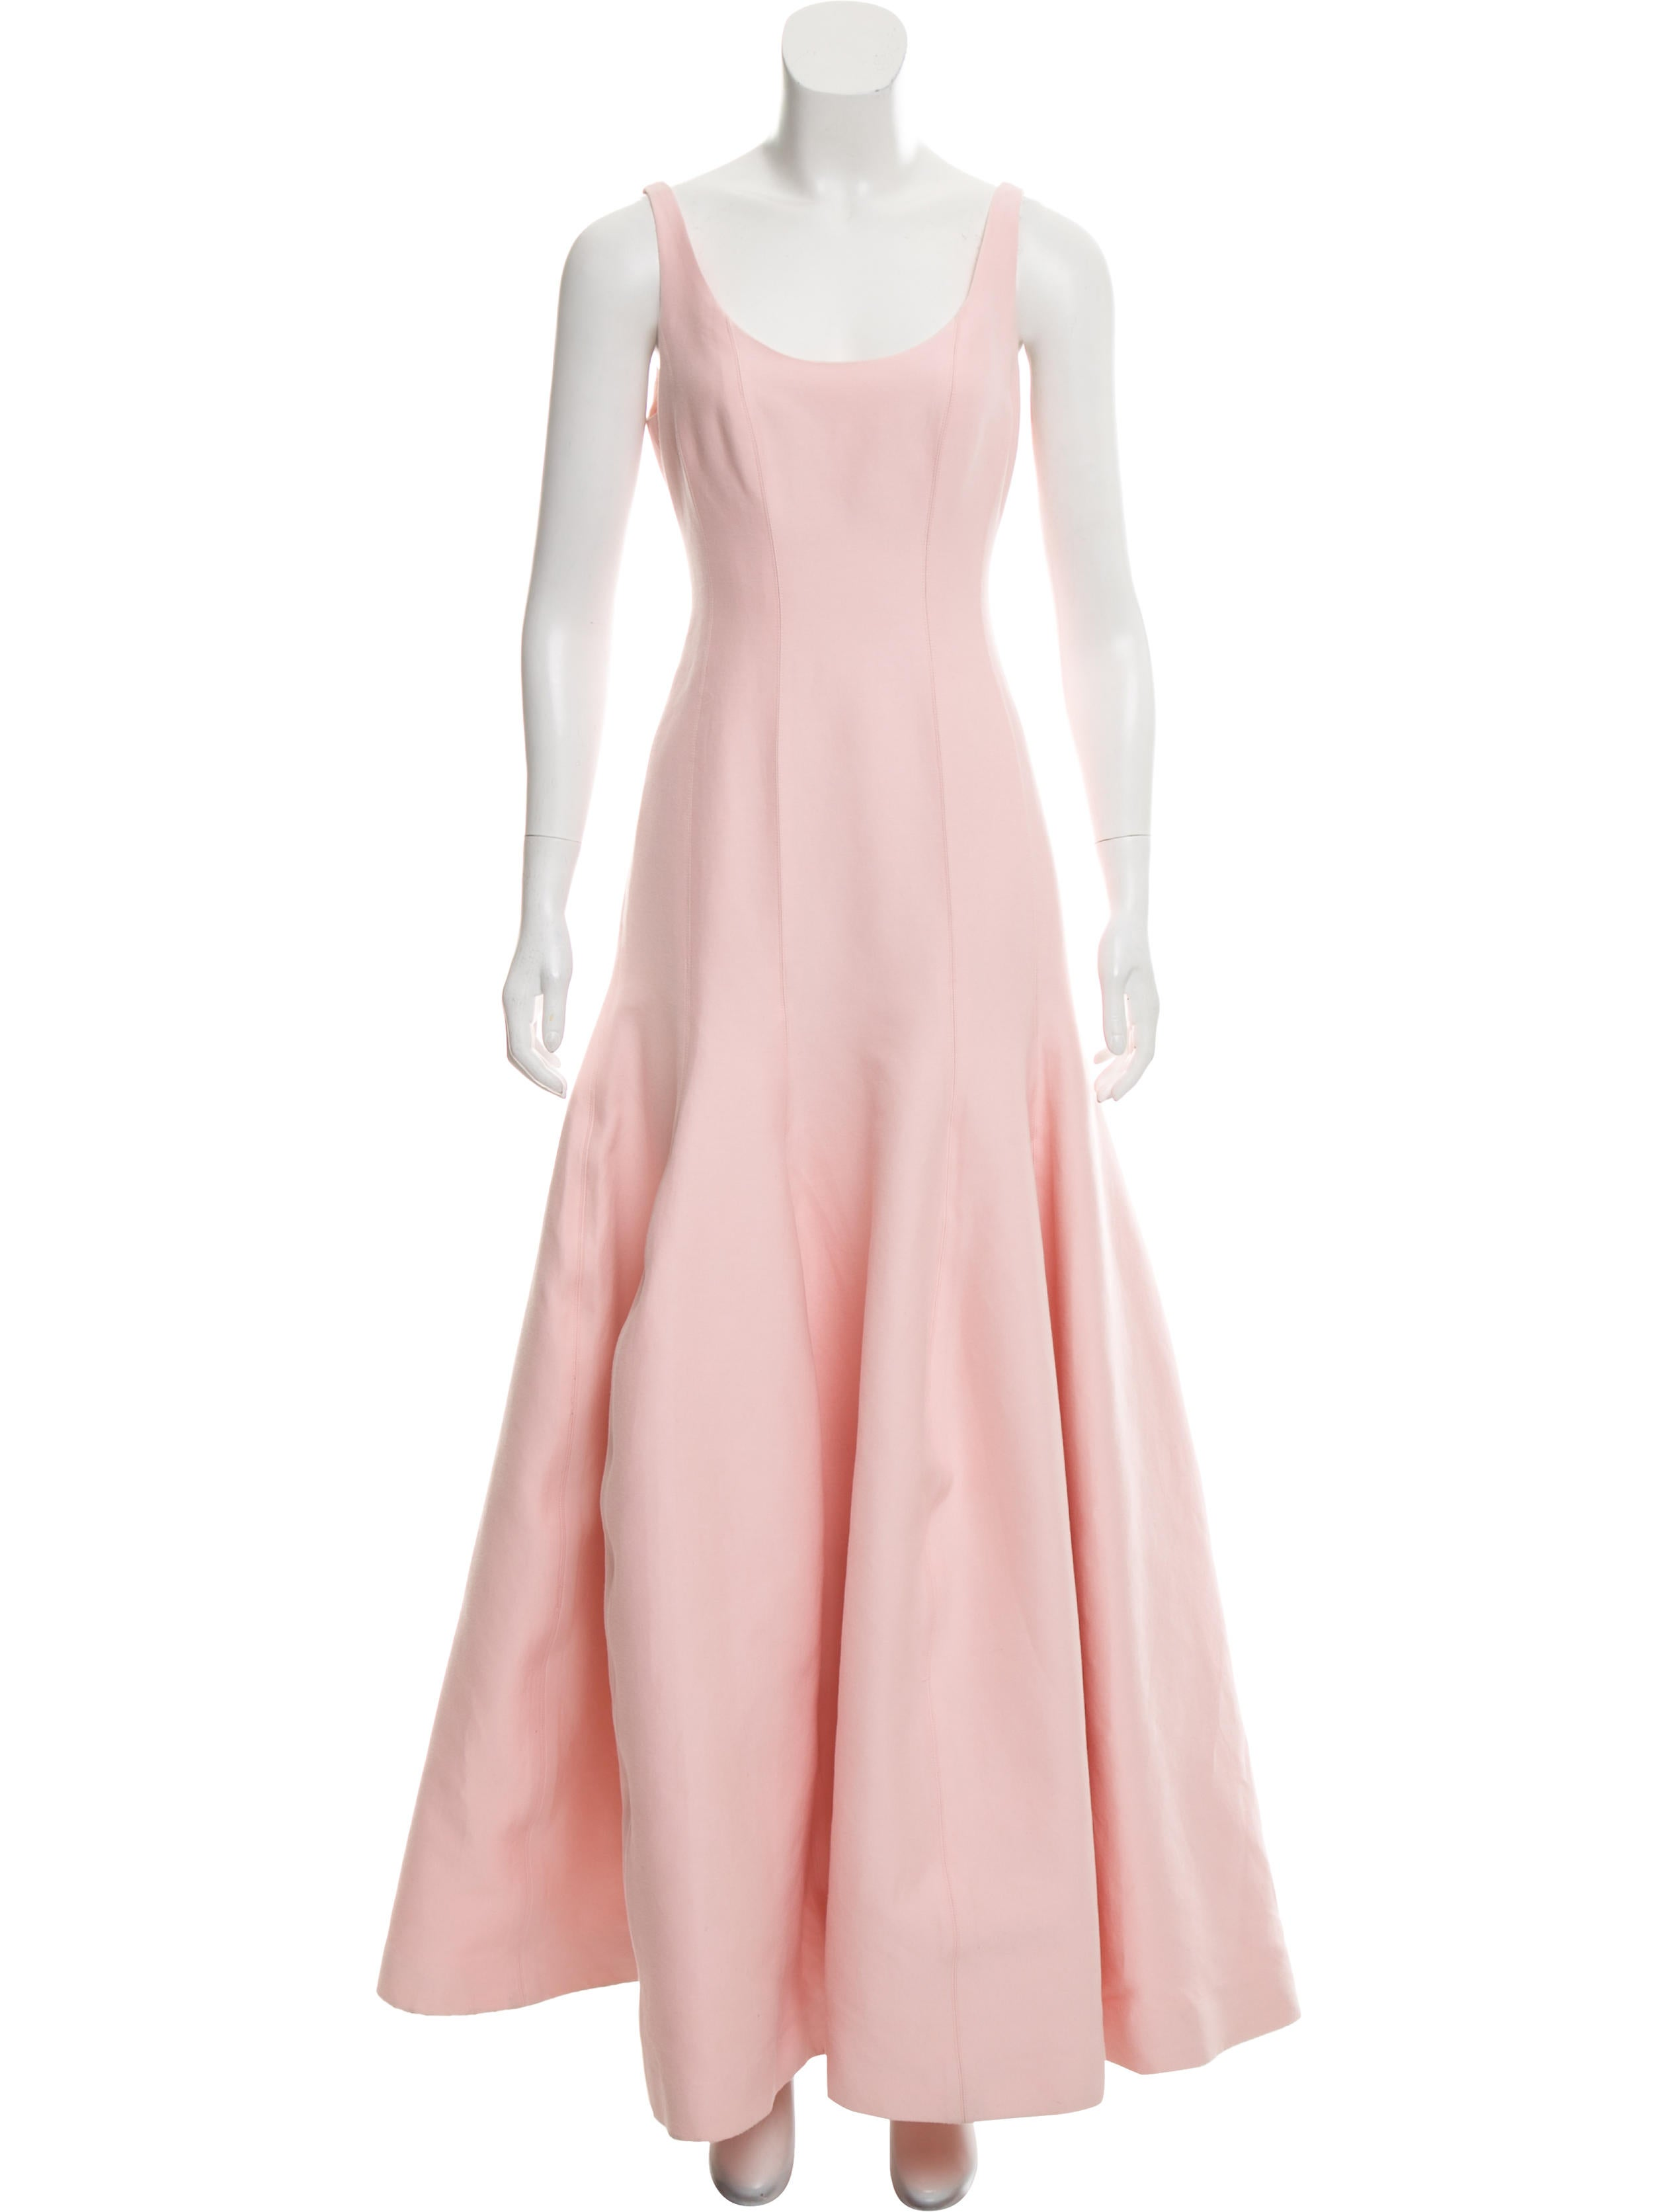 Halston Heritage Sleeveless Evening Gown - Clothing - WH129675 | The ...